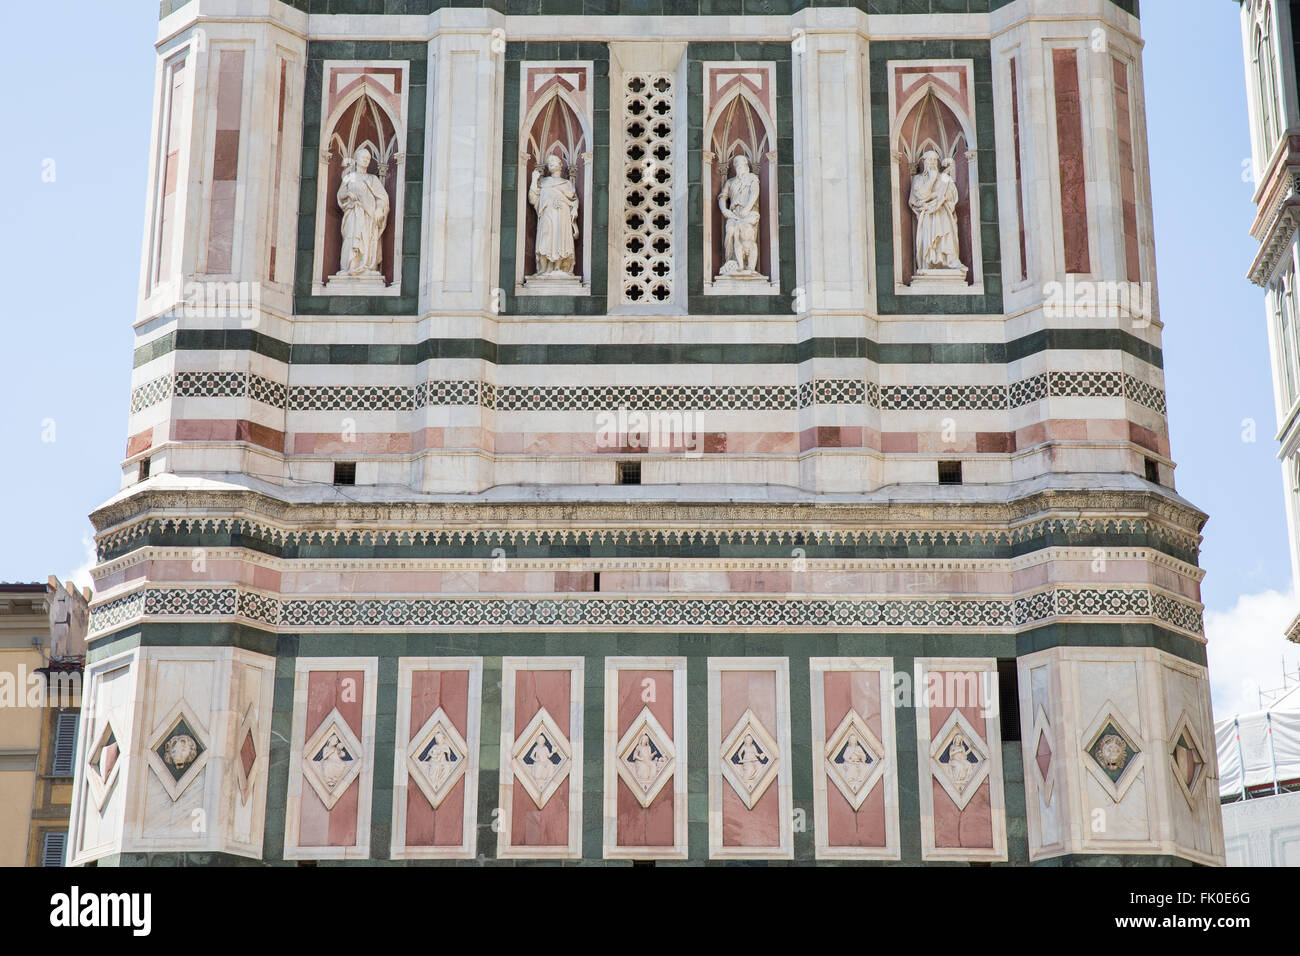 architectural detail on the giotto bell tower in florence italy